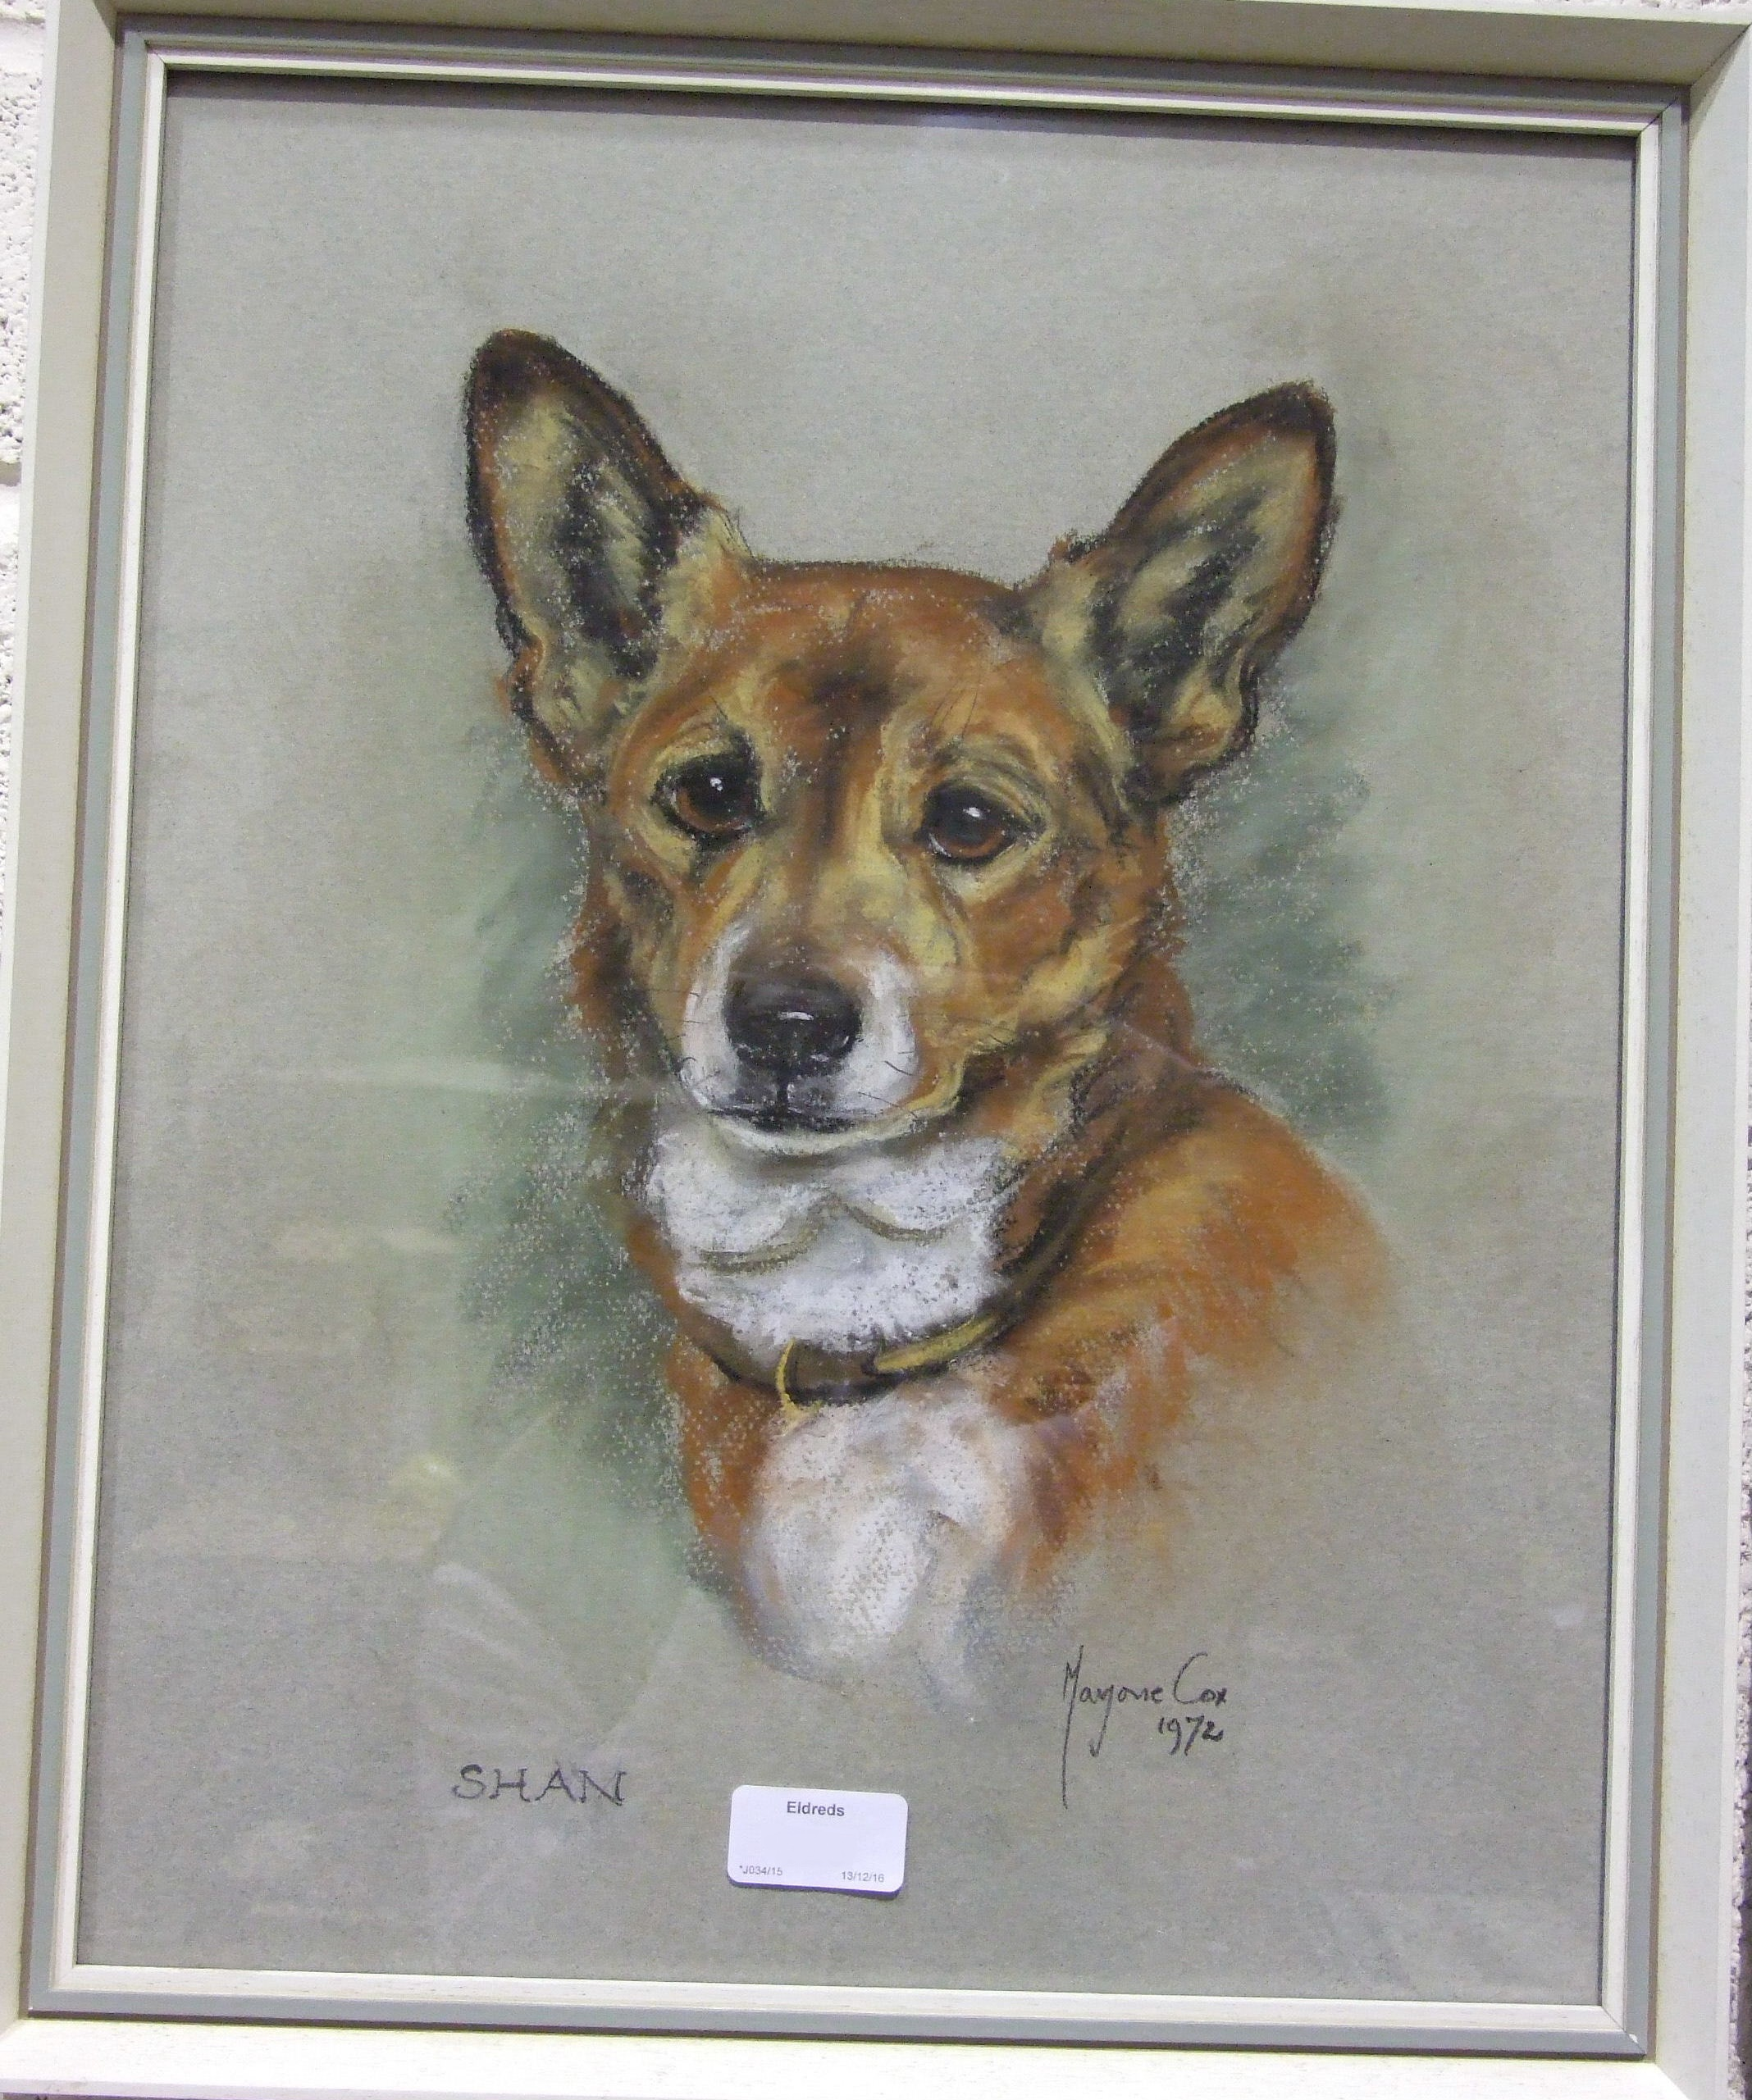 Lot 138 - Marjorie Cox, Shan, a crayon drawing of a corgi, signed and dated 1972, 42 x 32.5cm and other